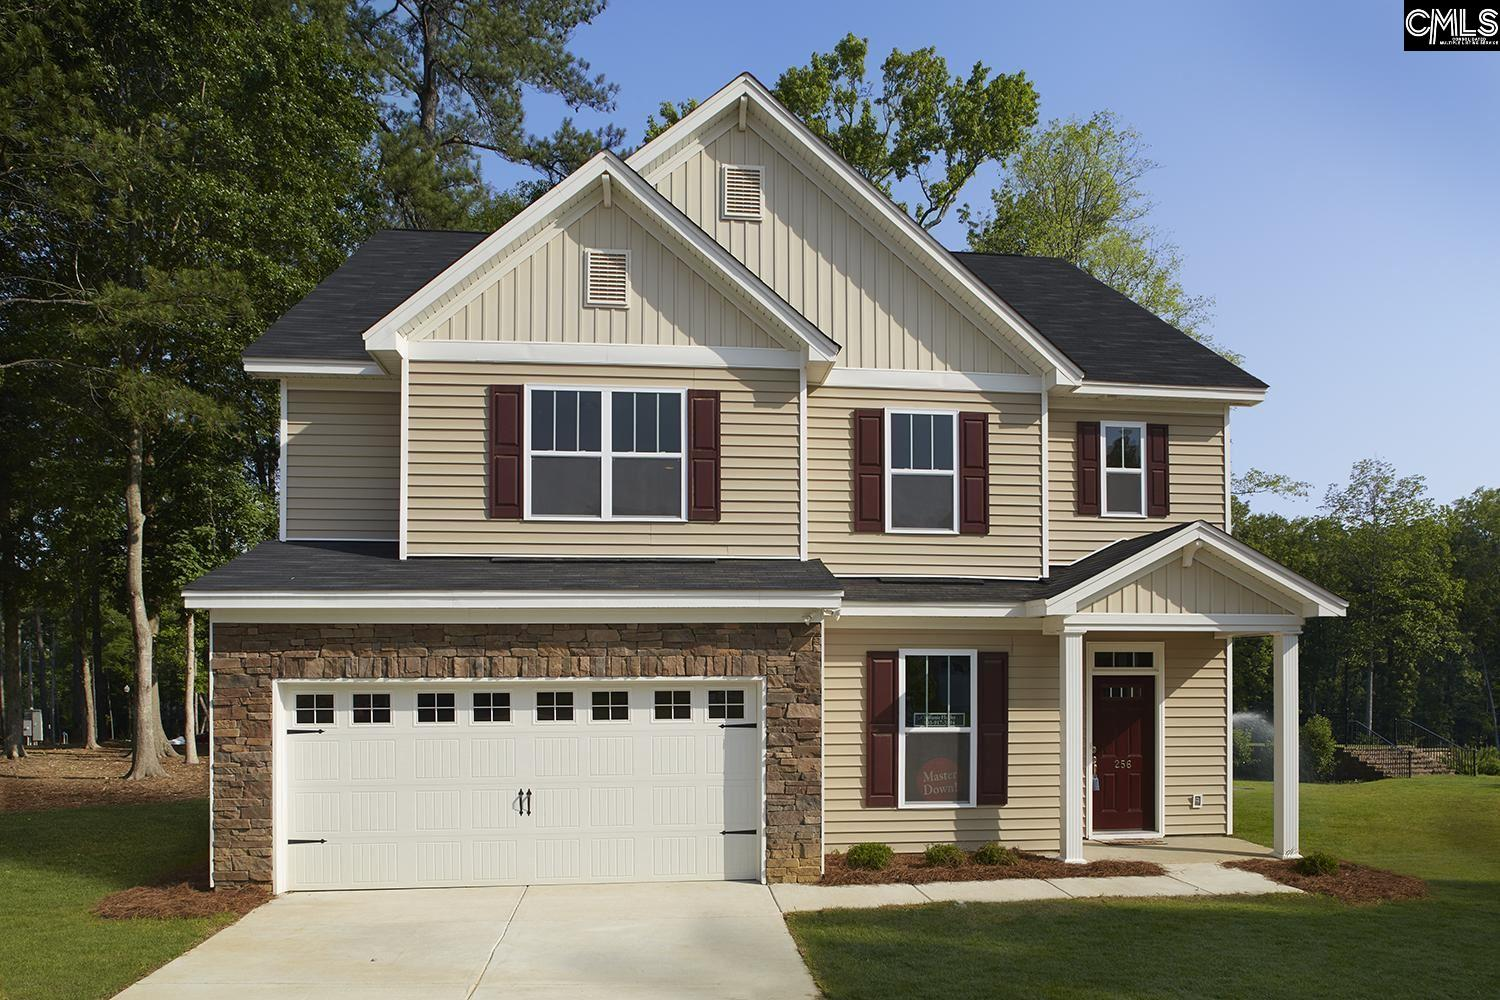 148 Mariner's Creek #66 Lexington, SC 29072